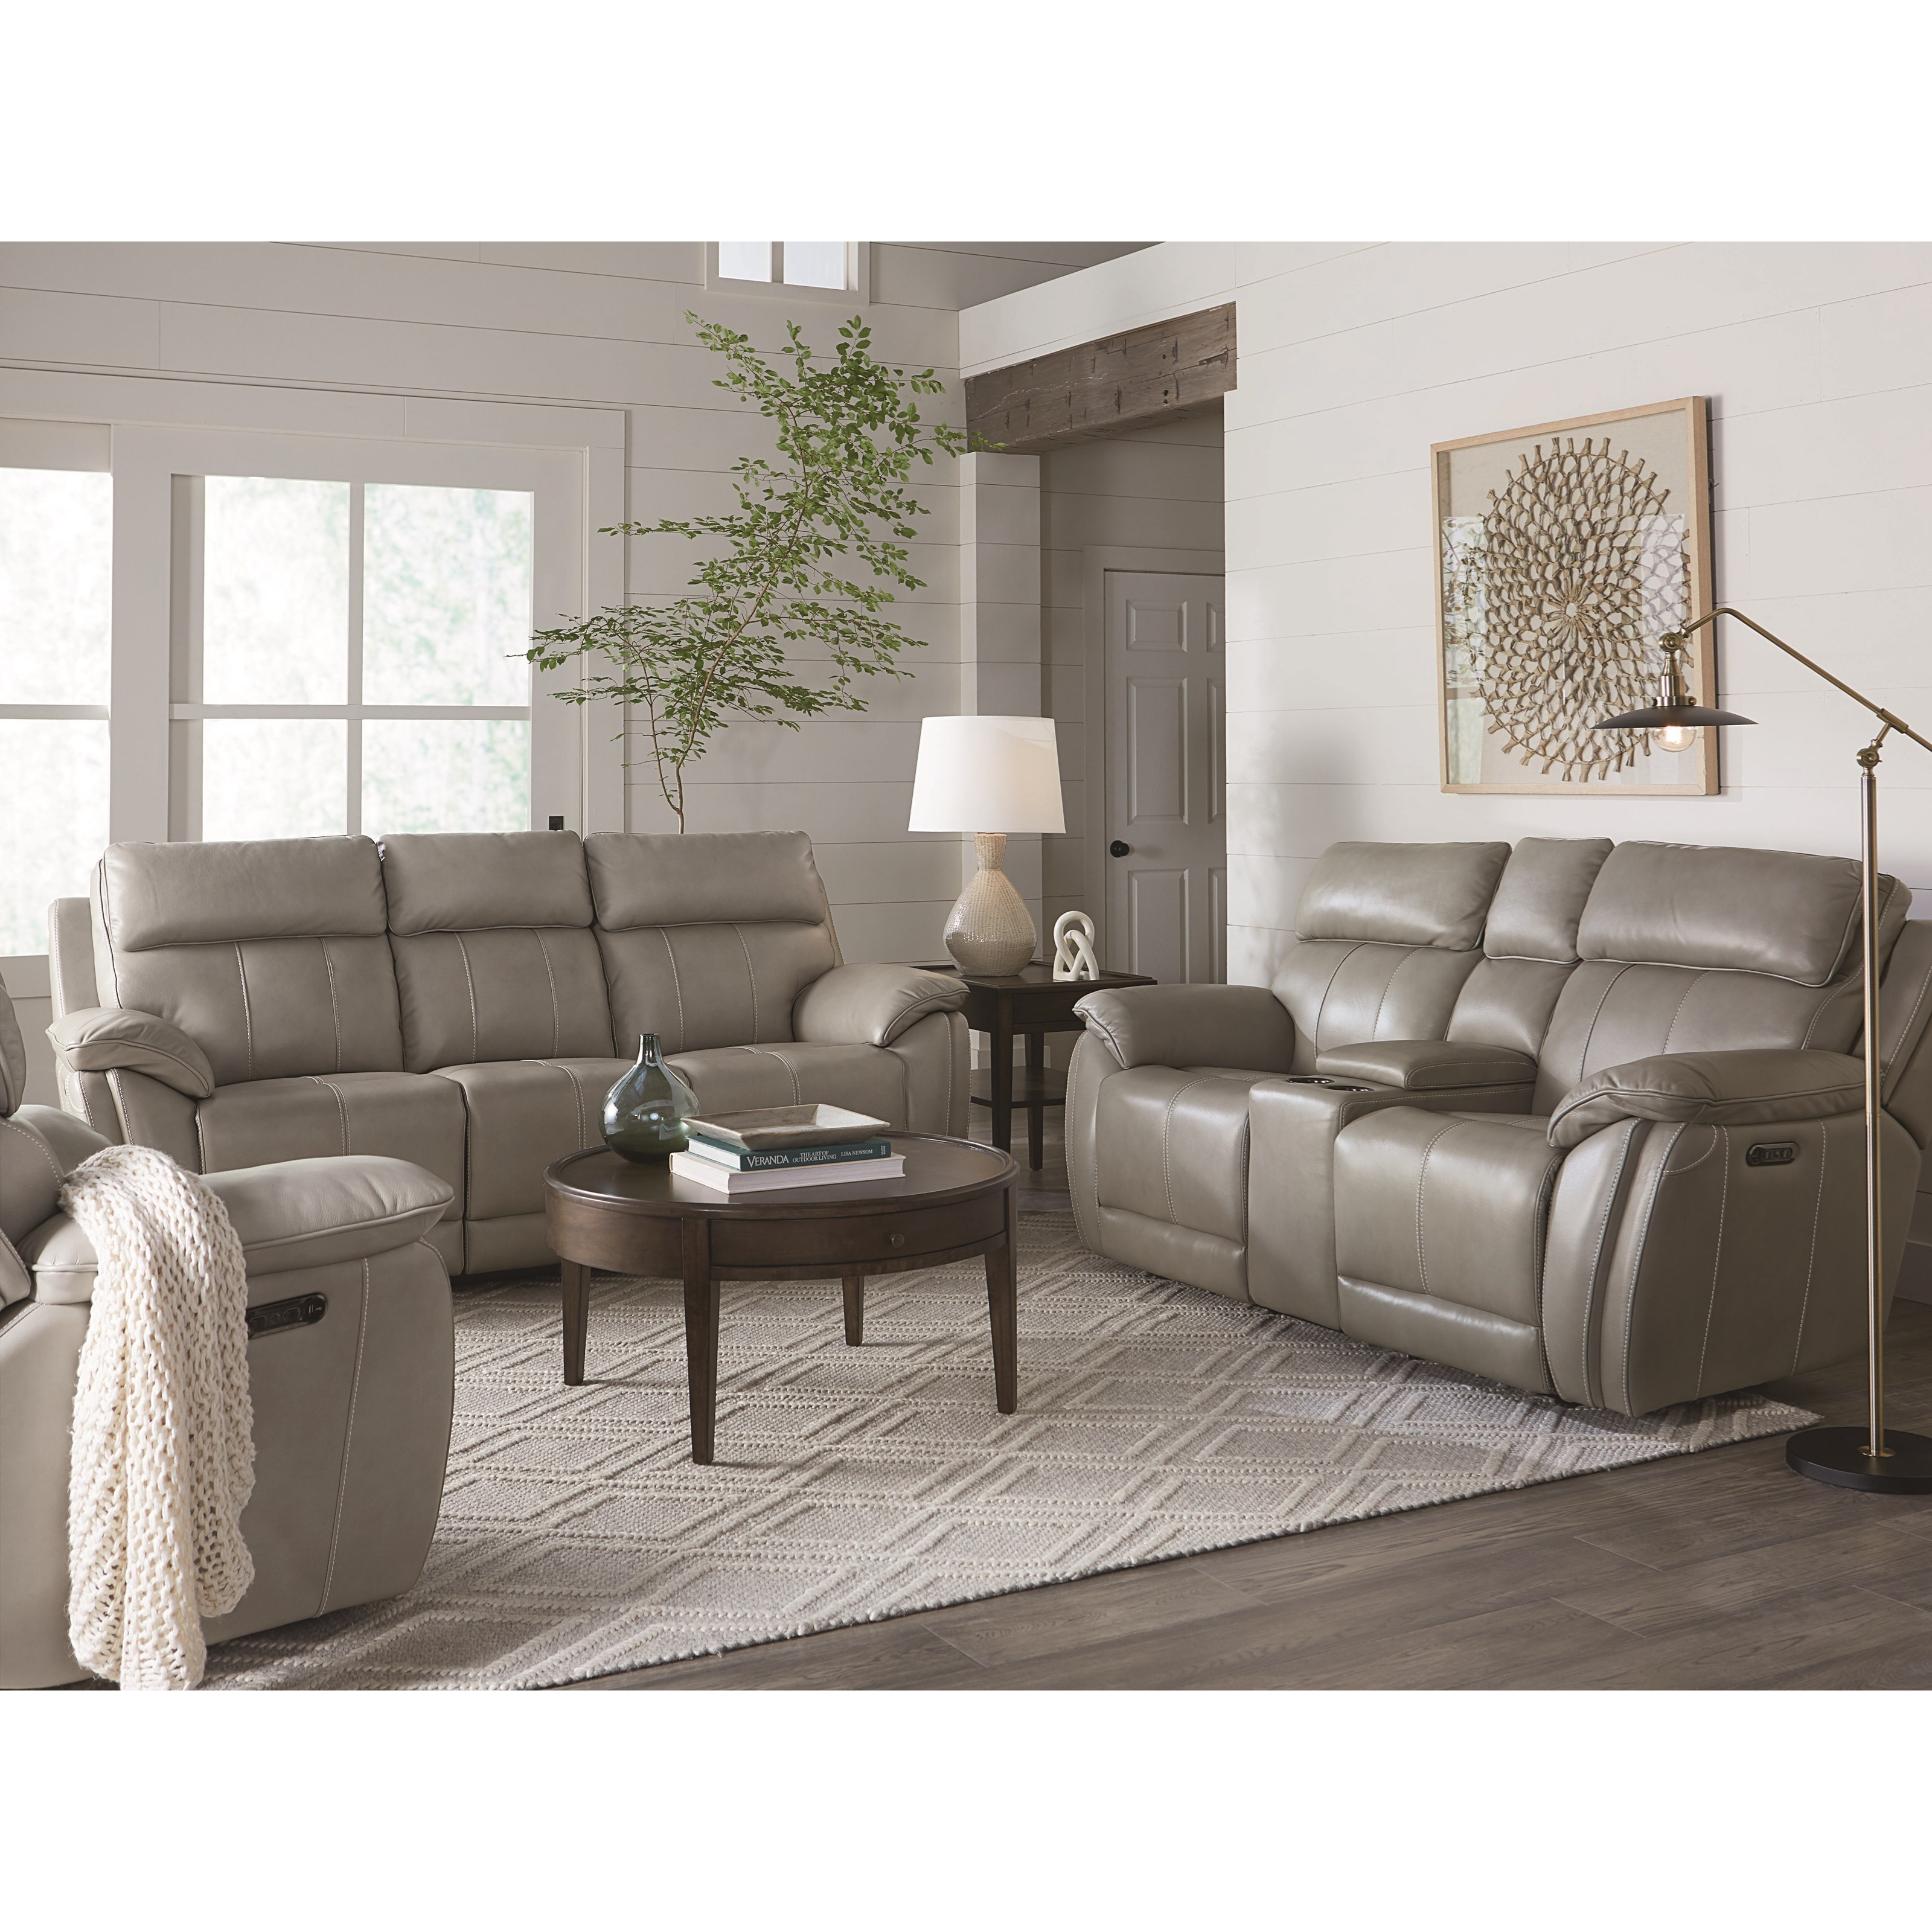 Club Level - Levitate Reclining Living Room Group by Bassett at Bassett of Cool Springs